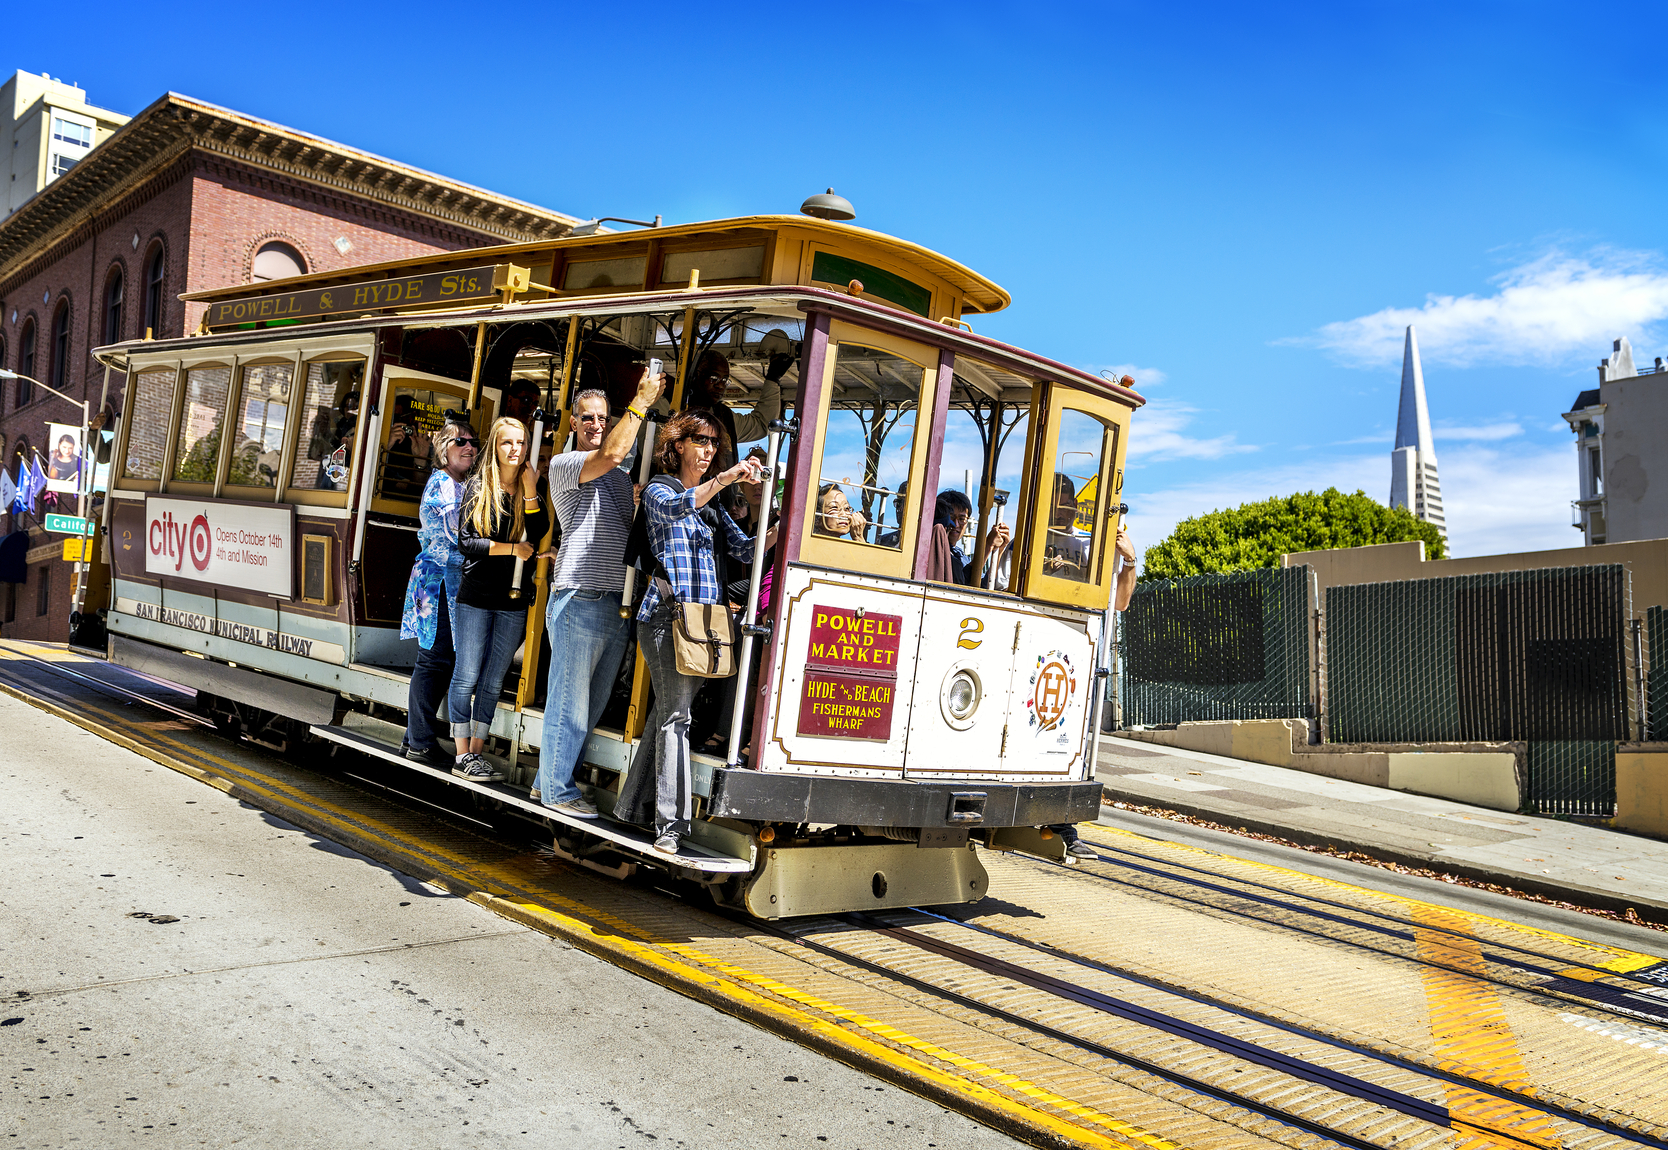 De wereldberoemde trolley in San Francisco. (foto istock)